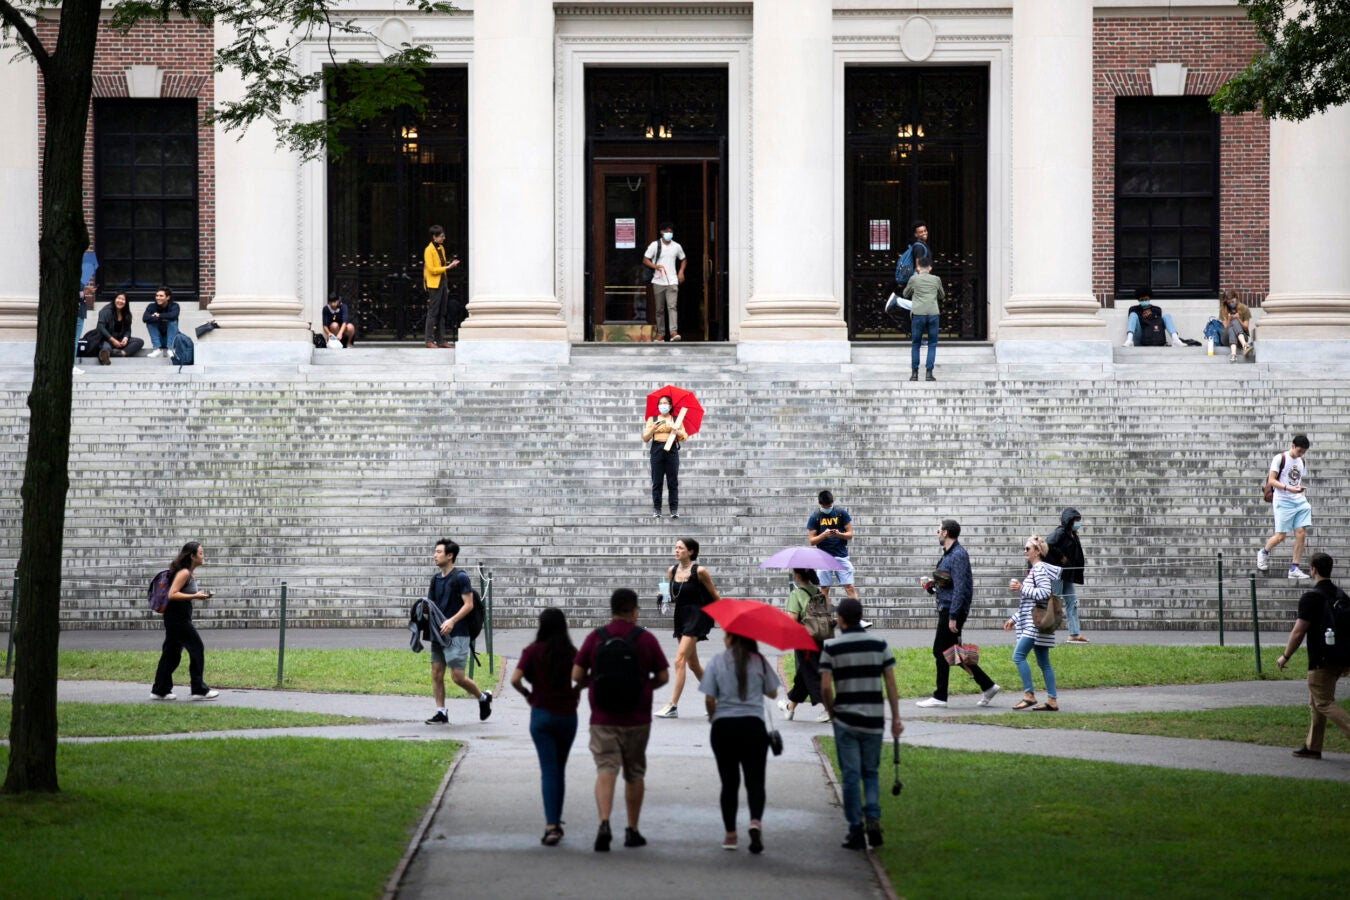 People parade by the steps of Widener Library.